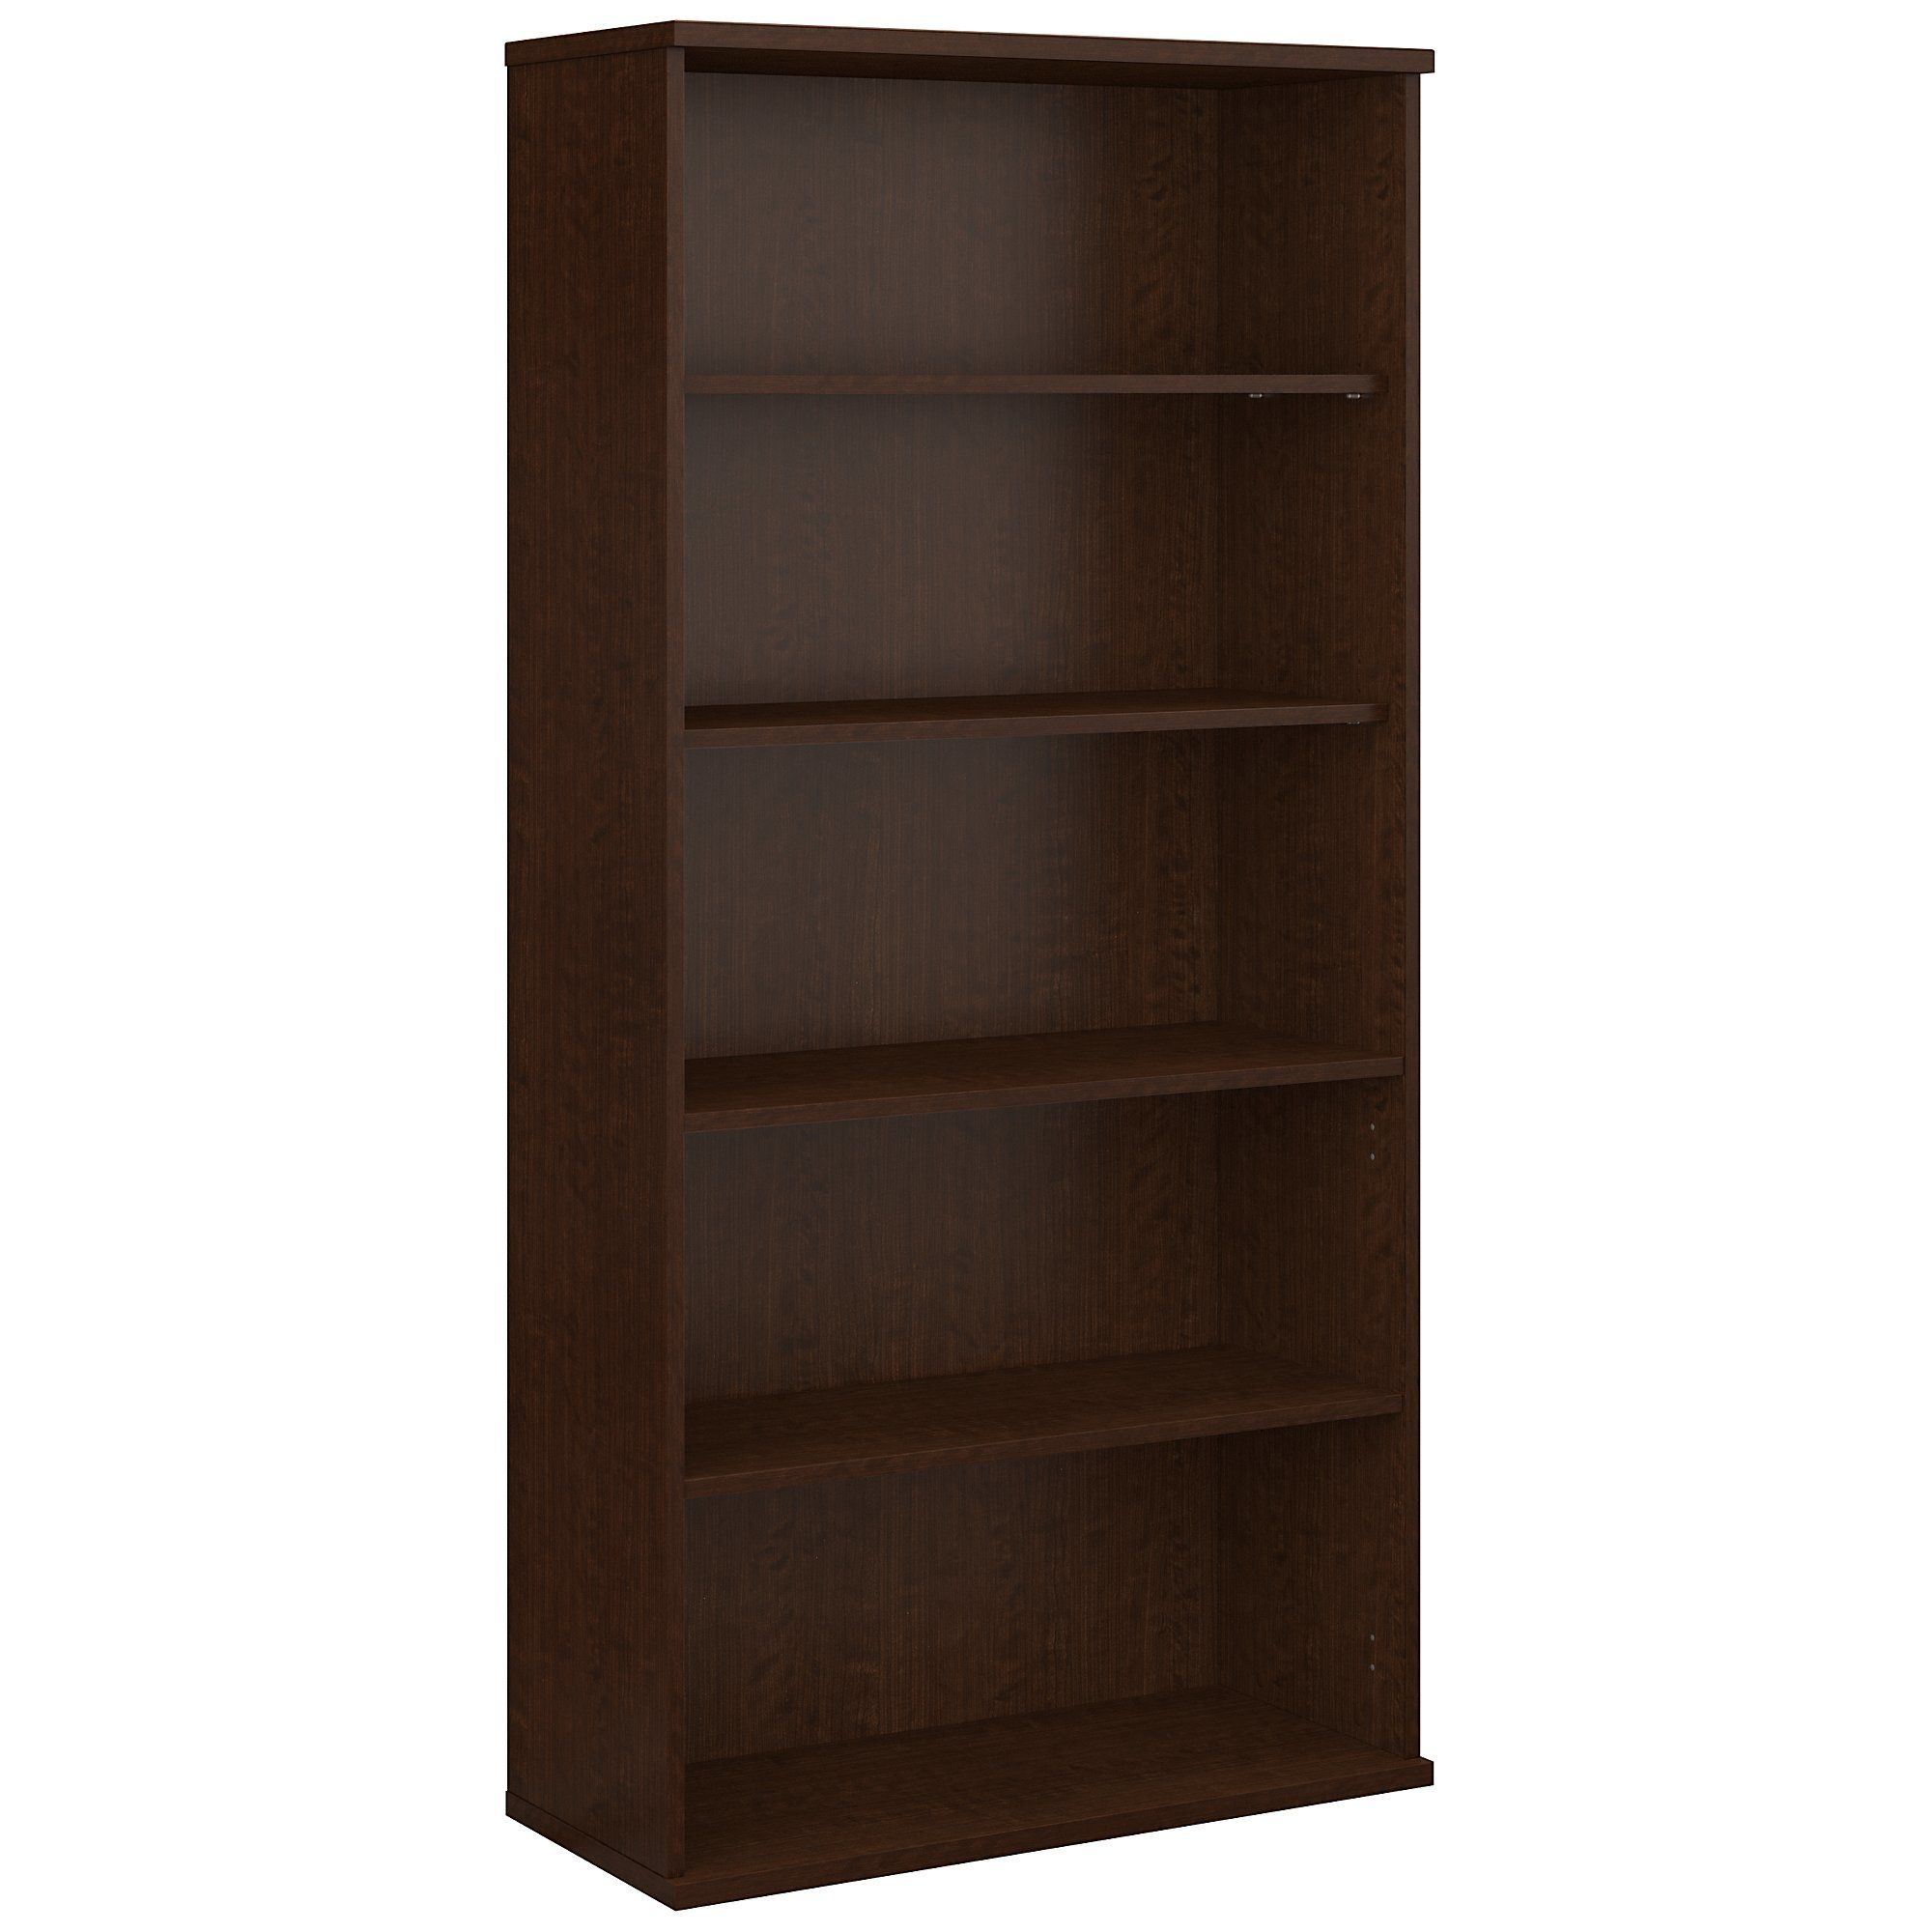 Series C Standard Bookcase Bush Business Furniture Bookcase 5 Shelf Bookcase